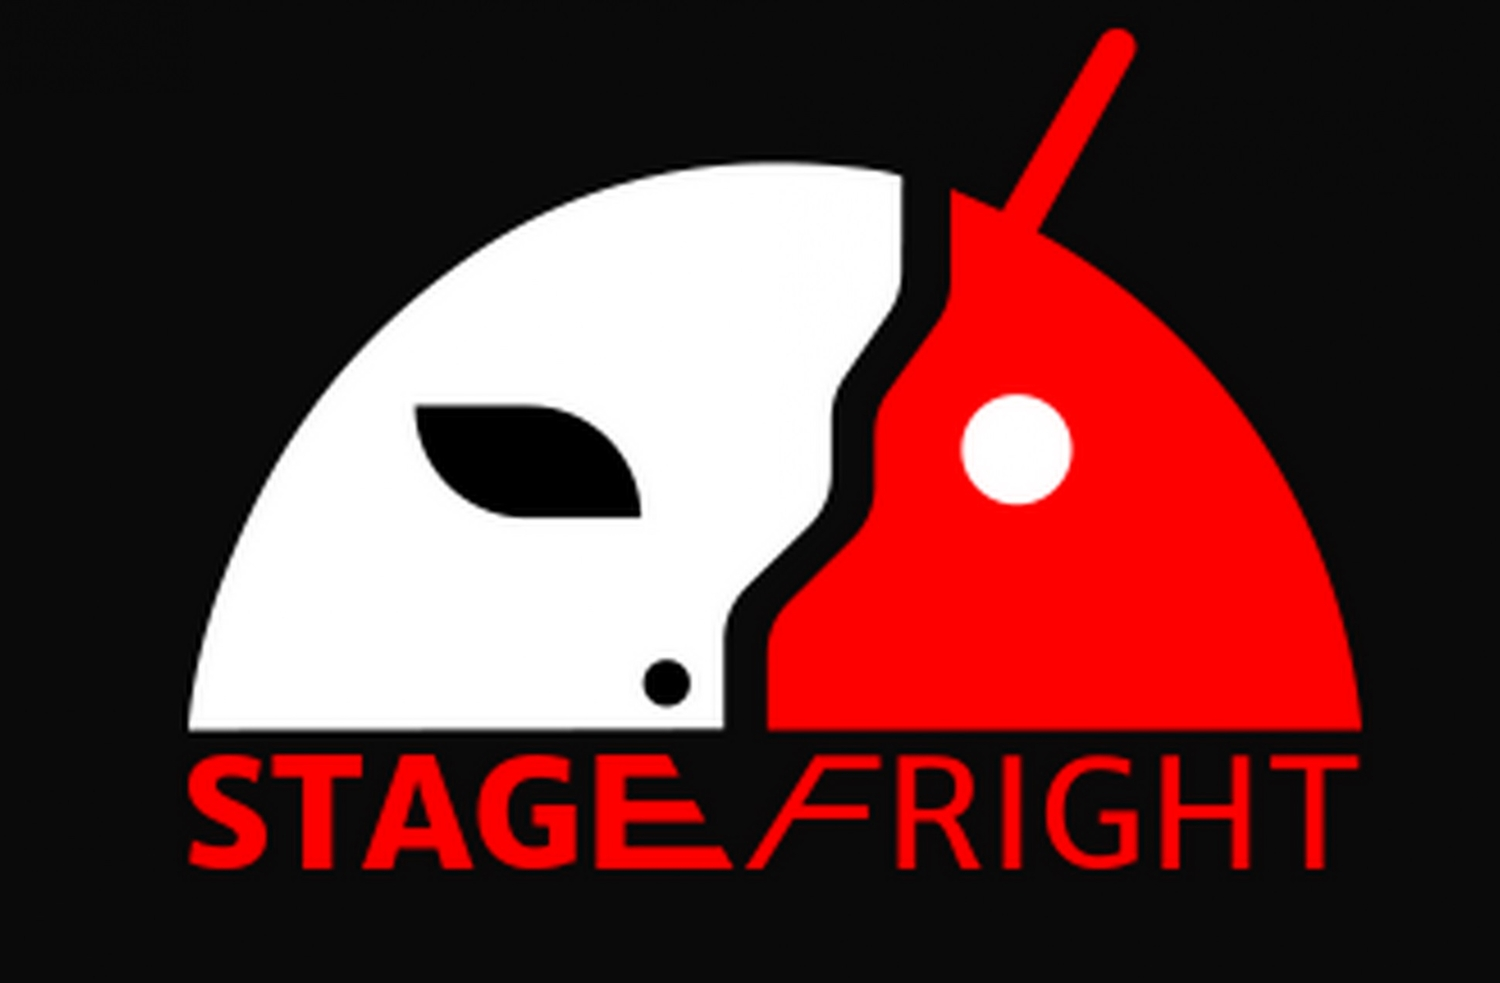 Stagefright: Putting Android Vulnerabilities In The Spotlight